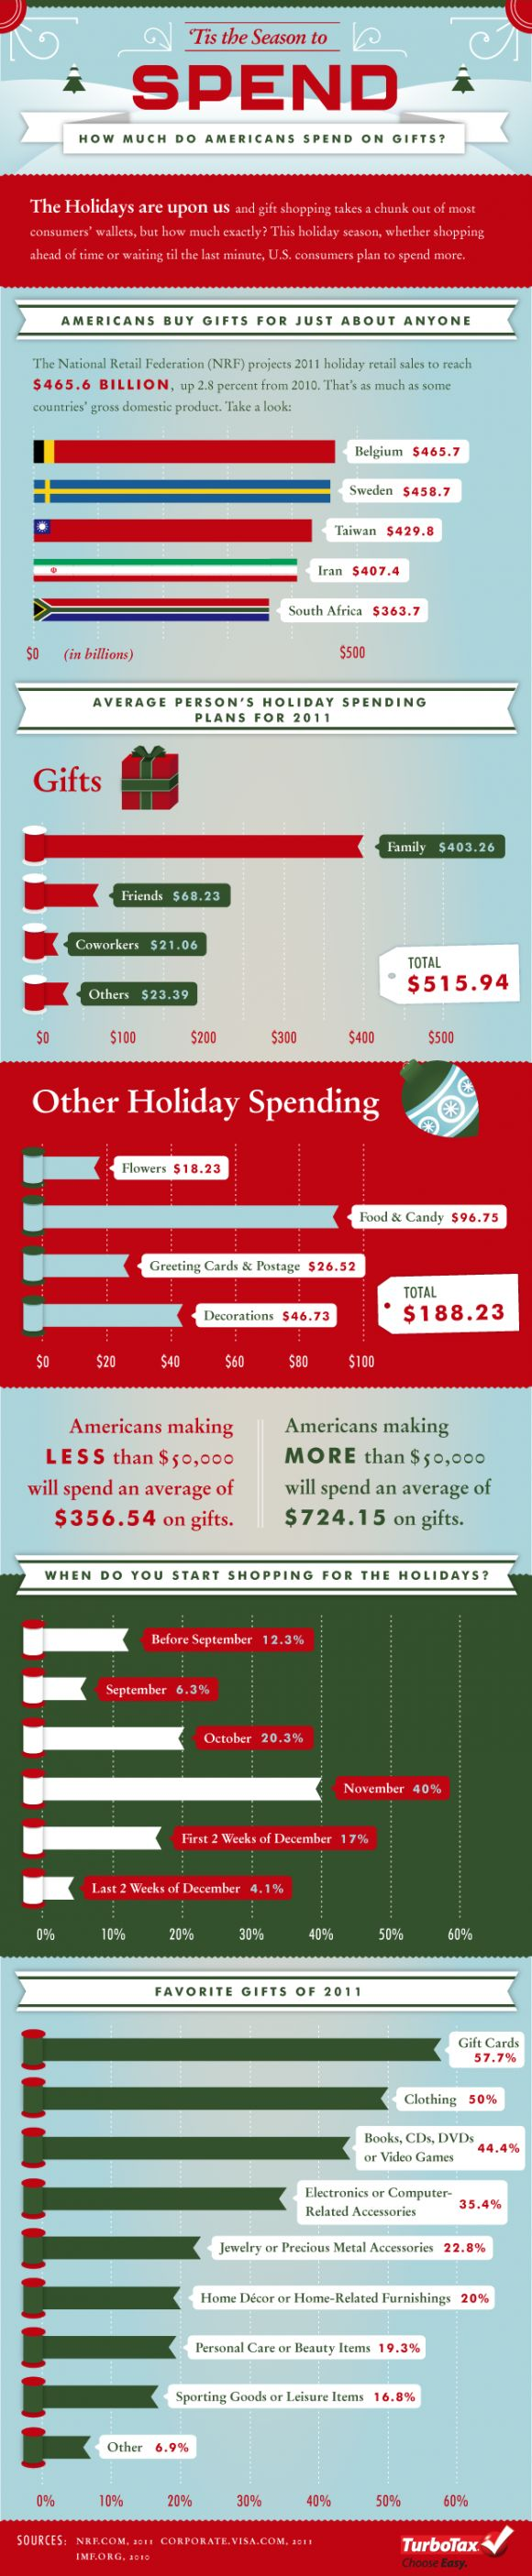 How Much Do Americans Spend On Holiday Gifts? #infographic ...